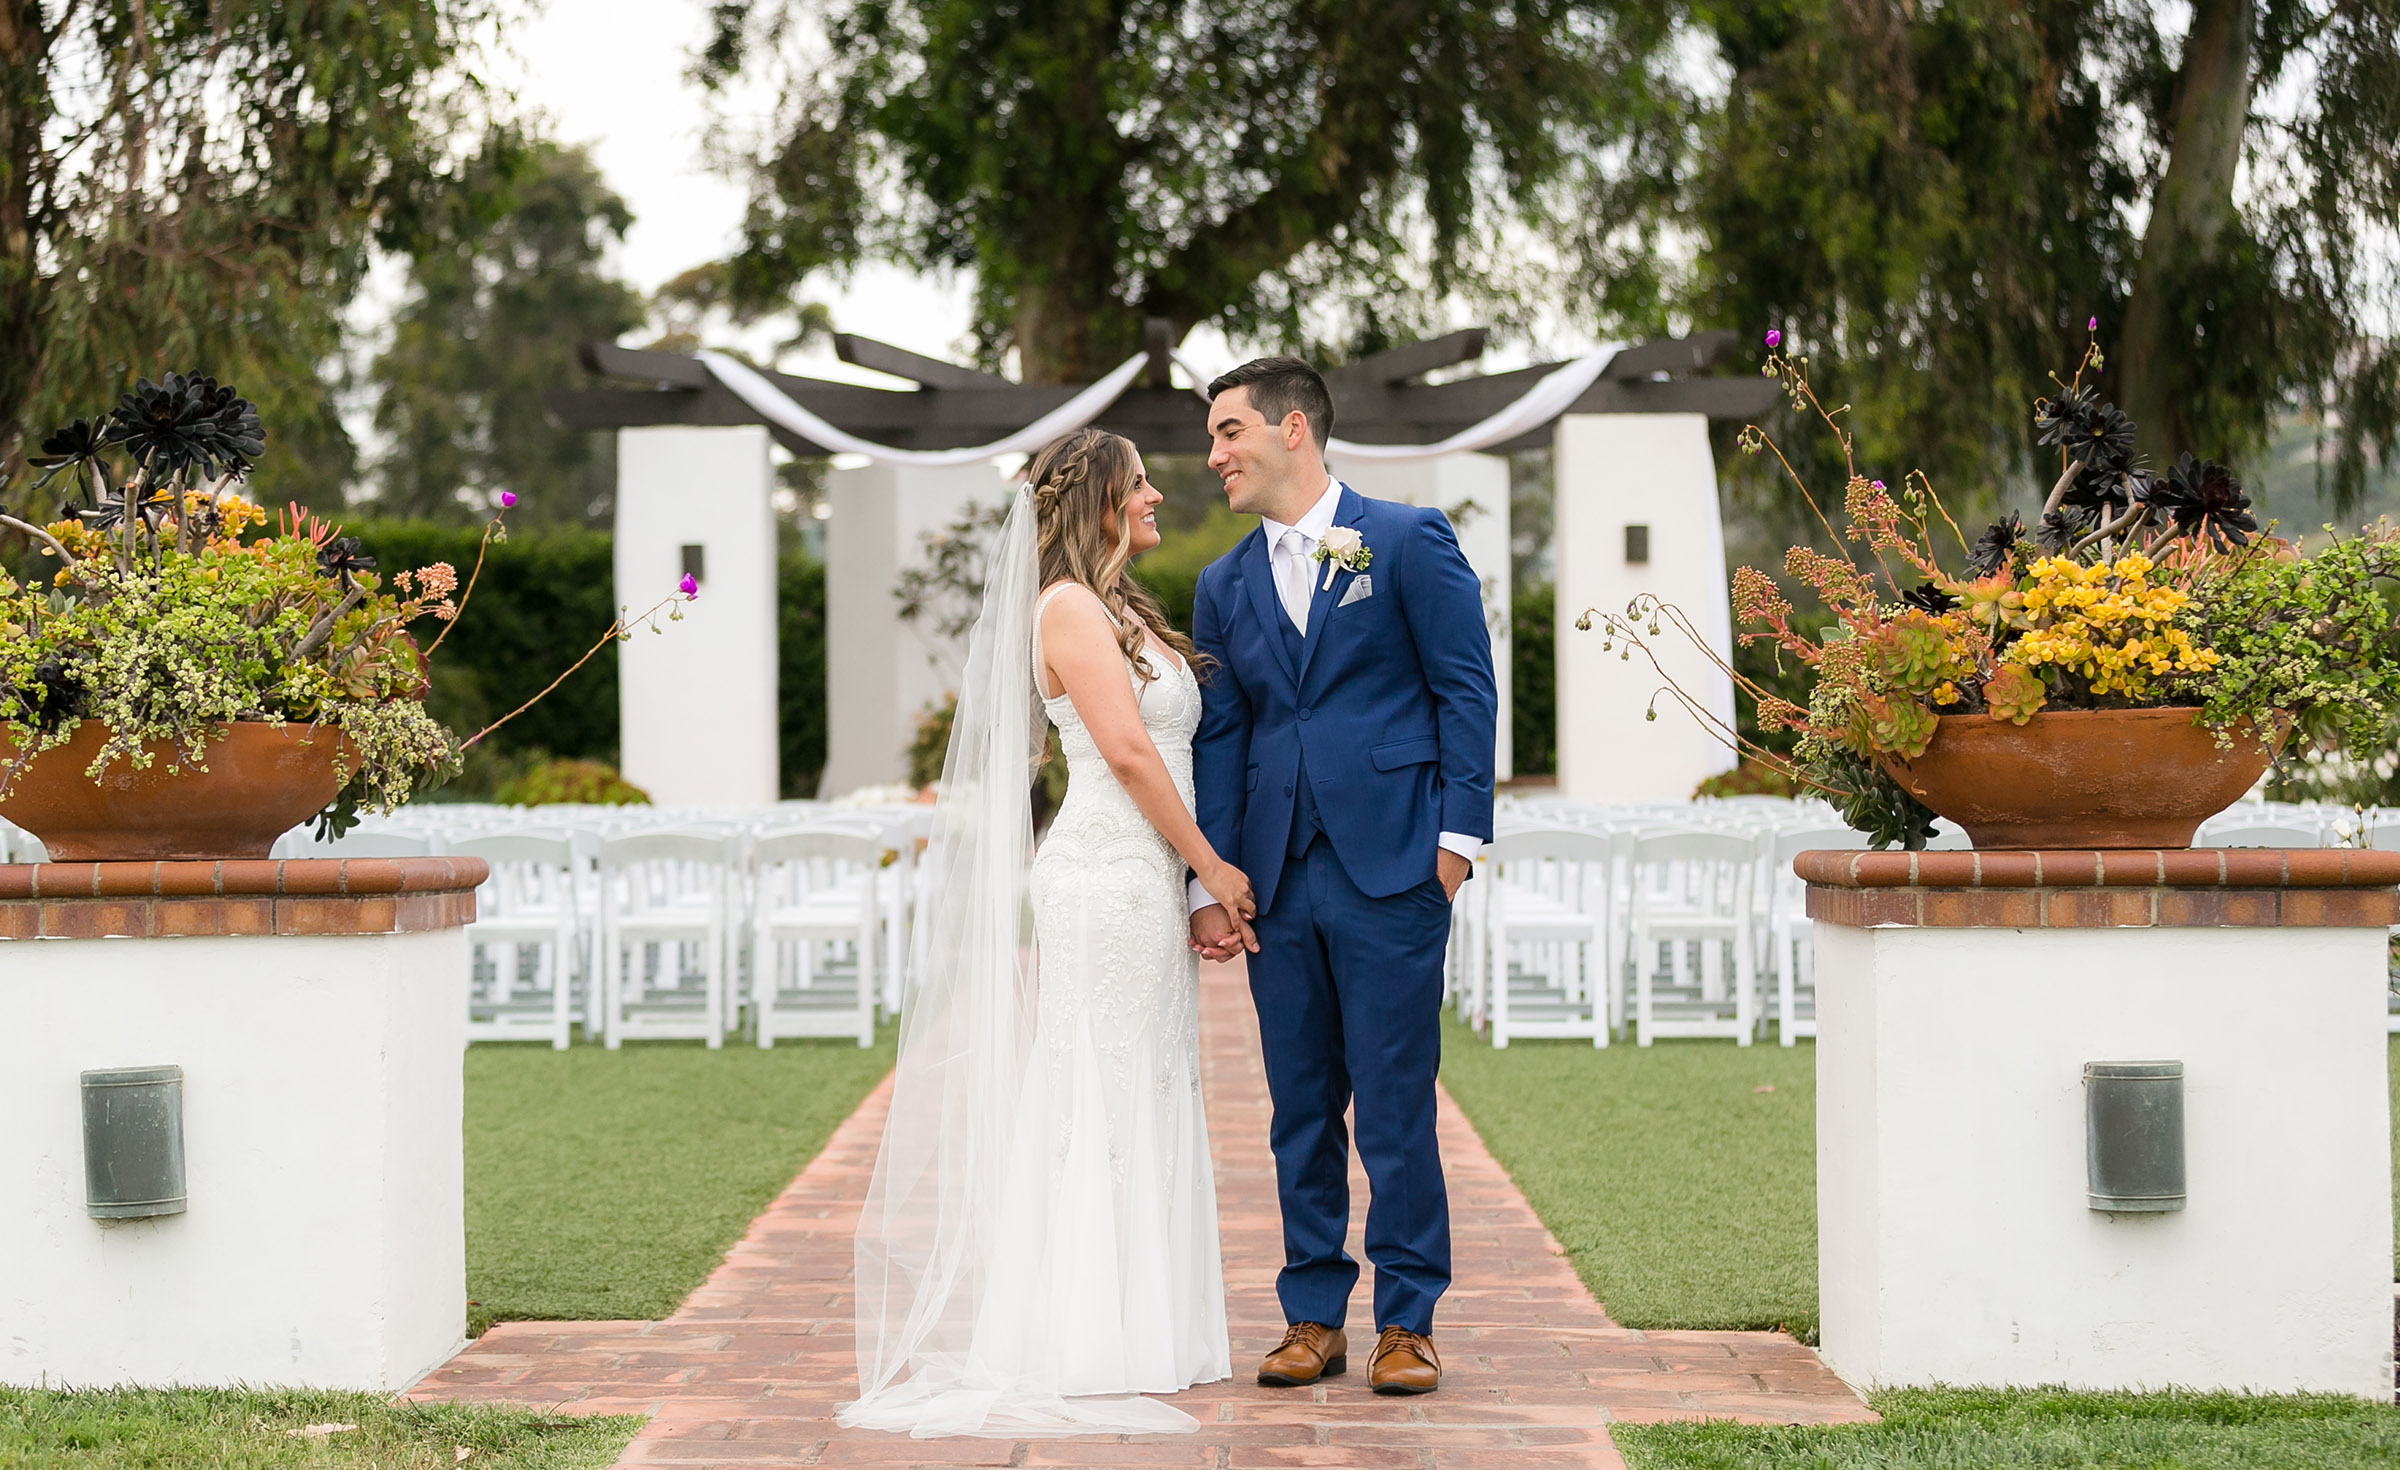 Outdoor wedding - San Clemente - San Clemente, California - Orange County - Wedgewood Weddings